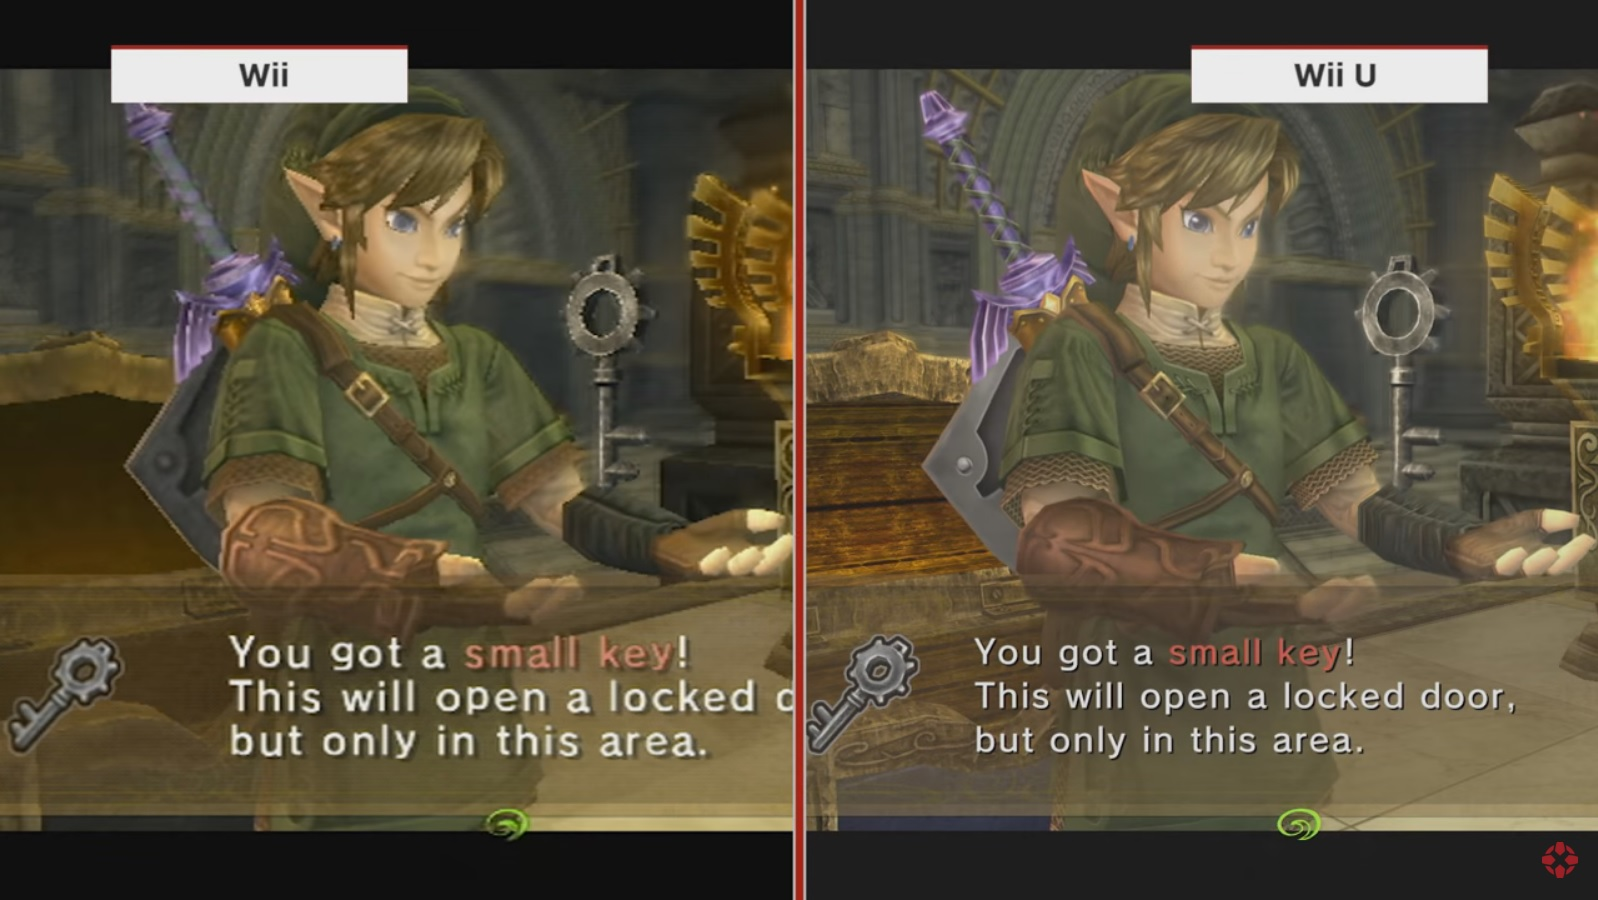 Twilight Princess HD comparison